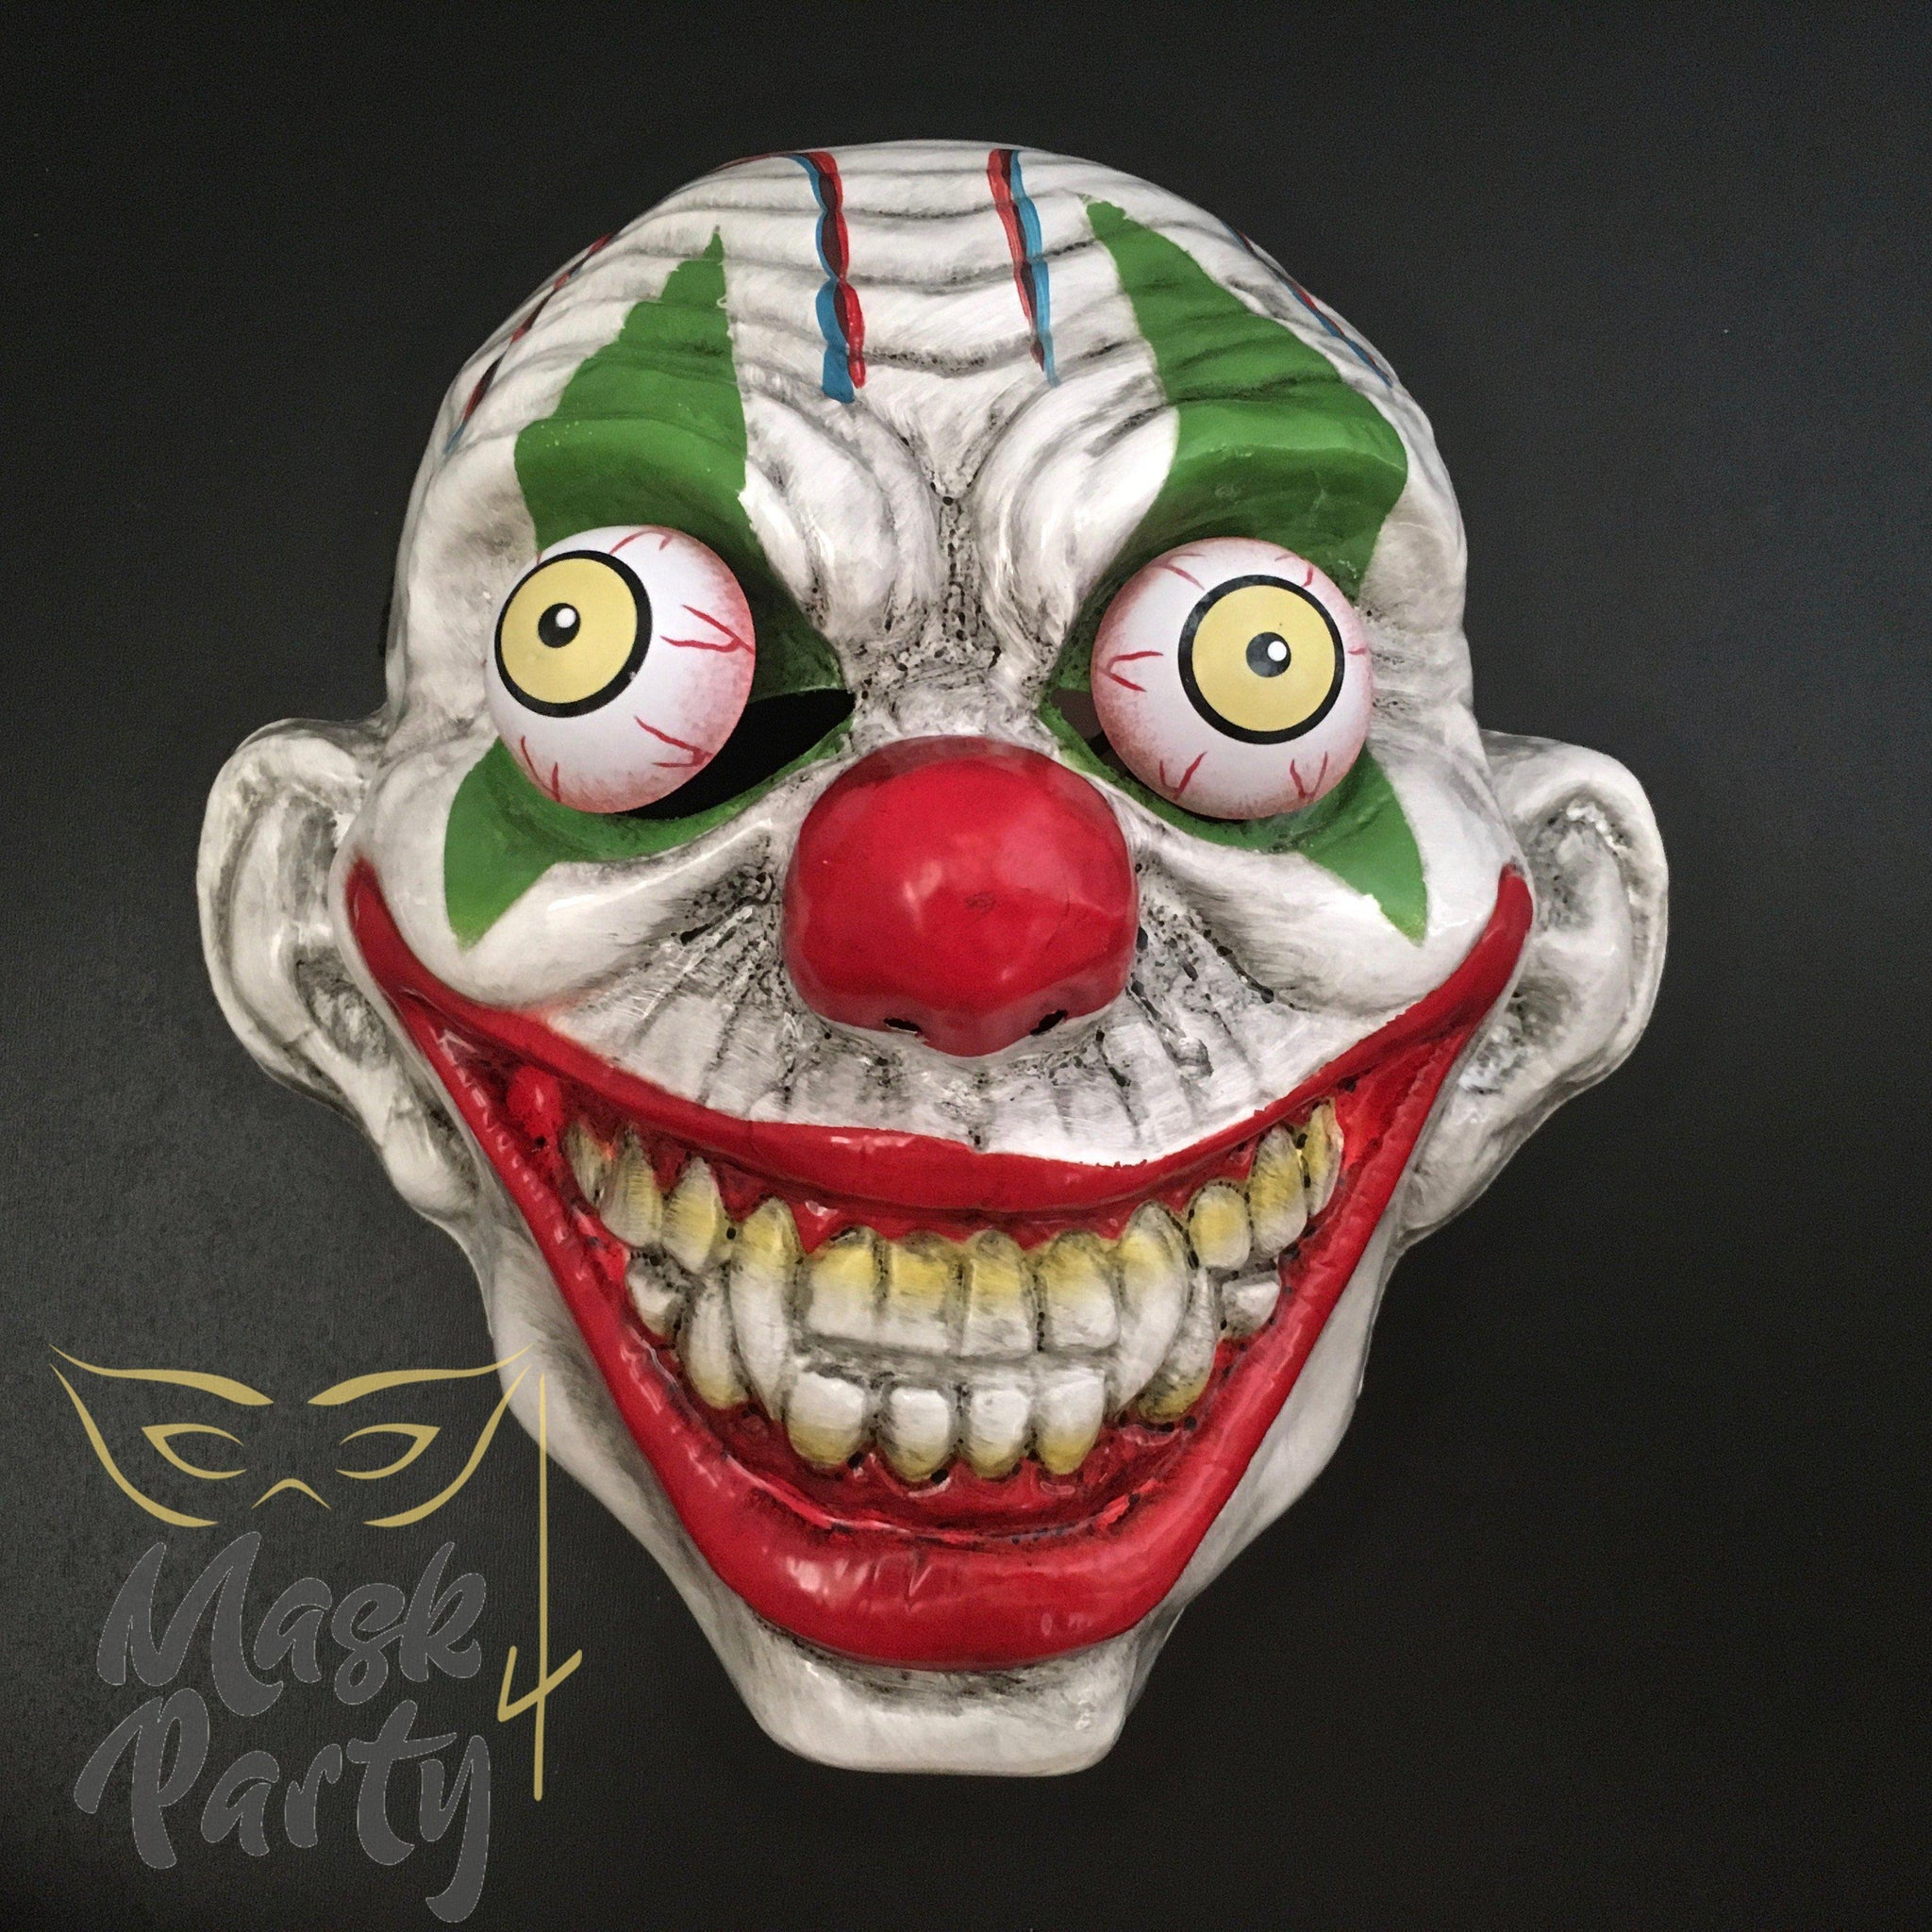 SALE - Day of the Dead Halloween Mask - Big Eyeballs - Clown - Mask4Party